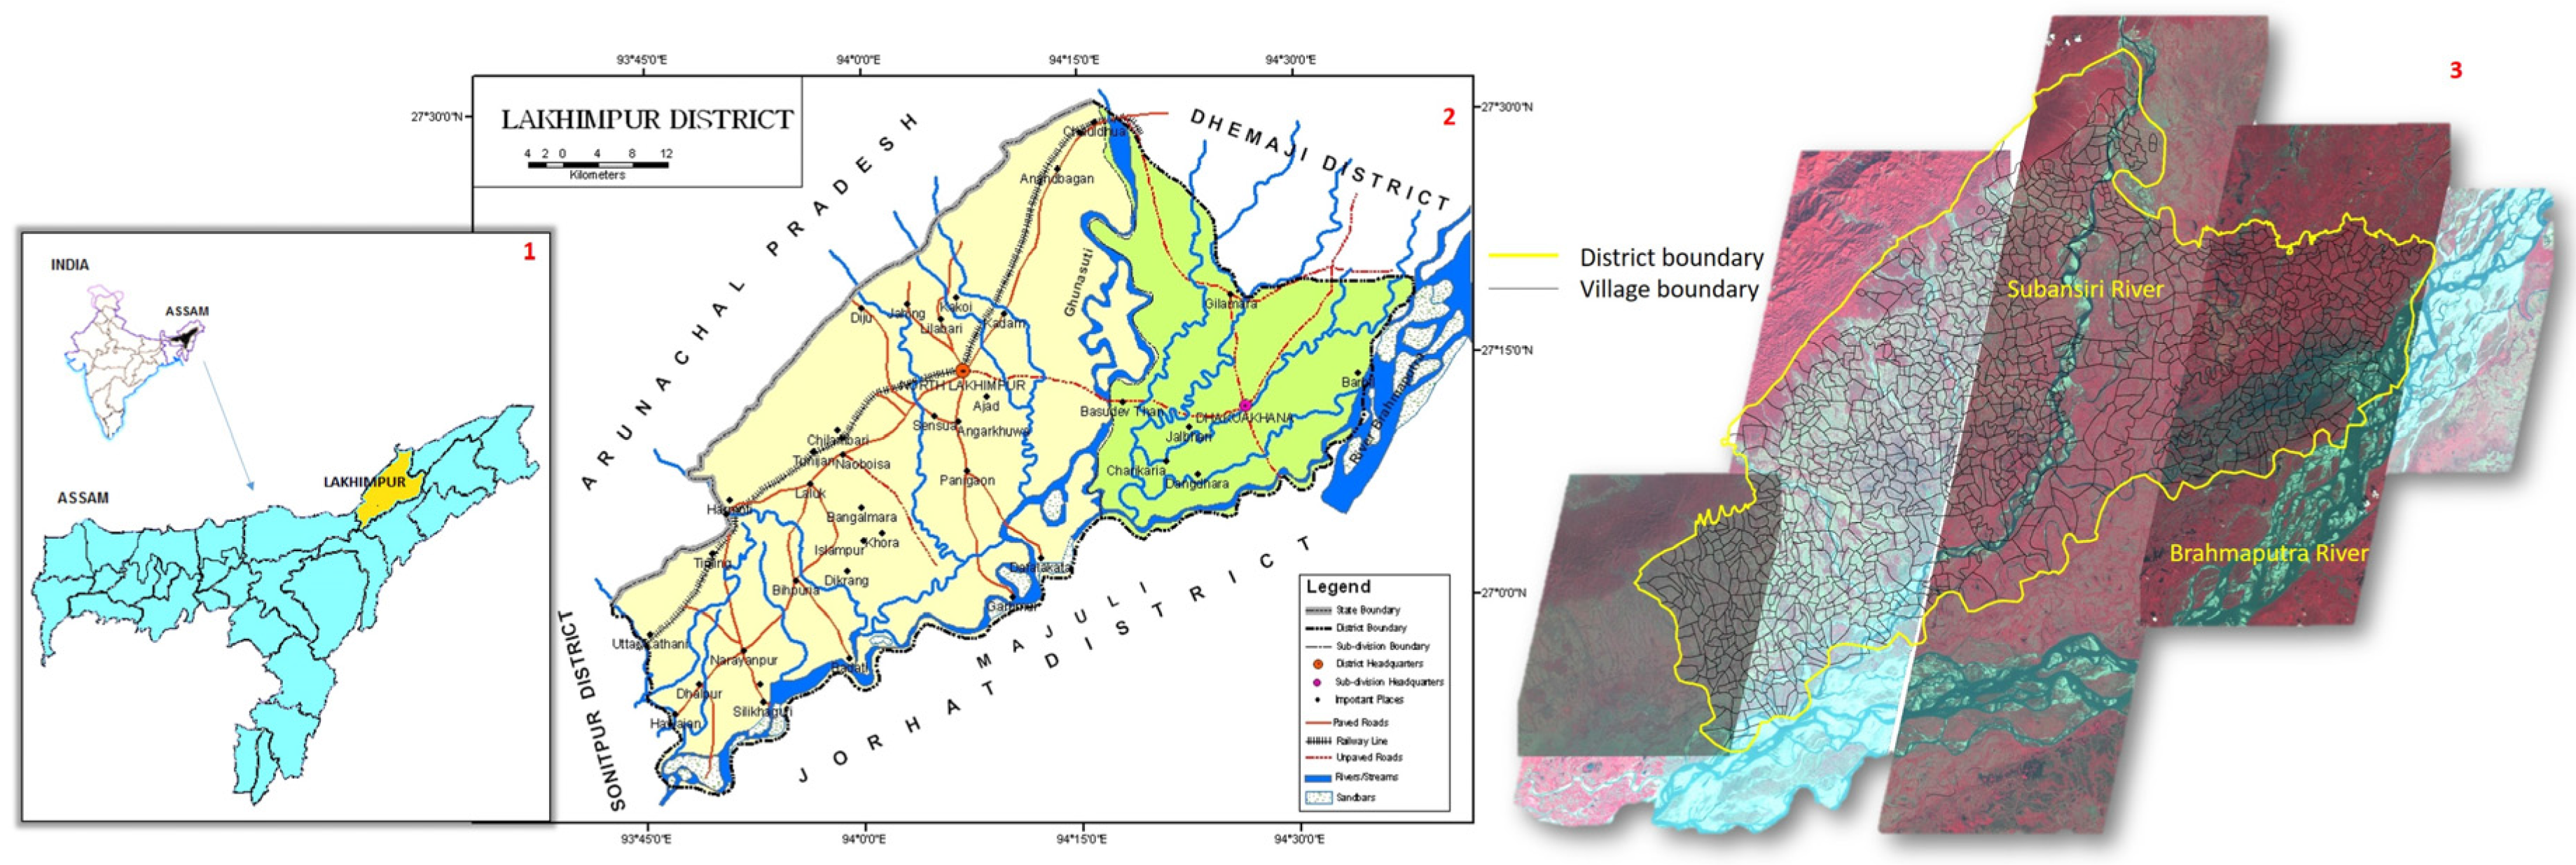 The Impact of Ice Cover Roughness on Stream Hydrology